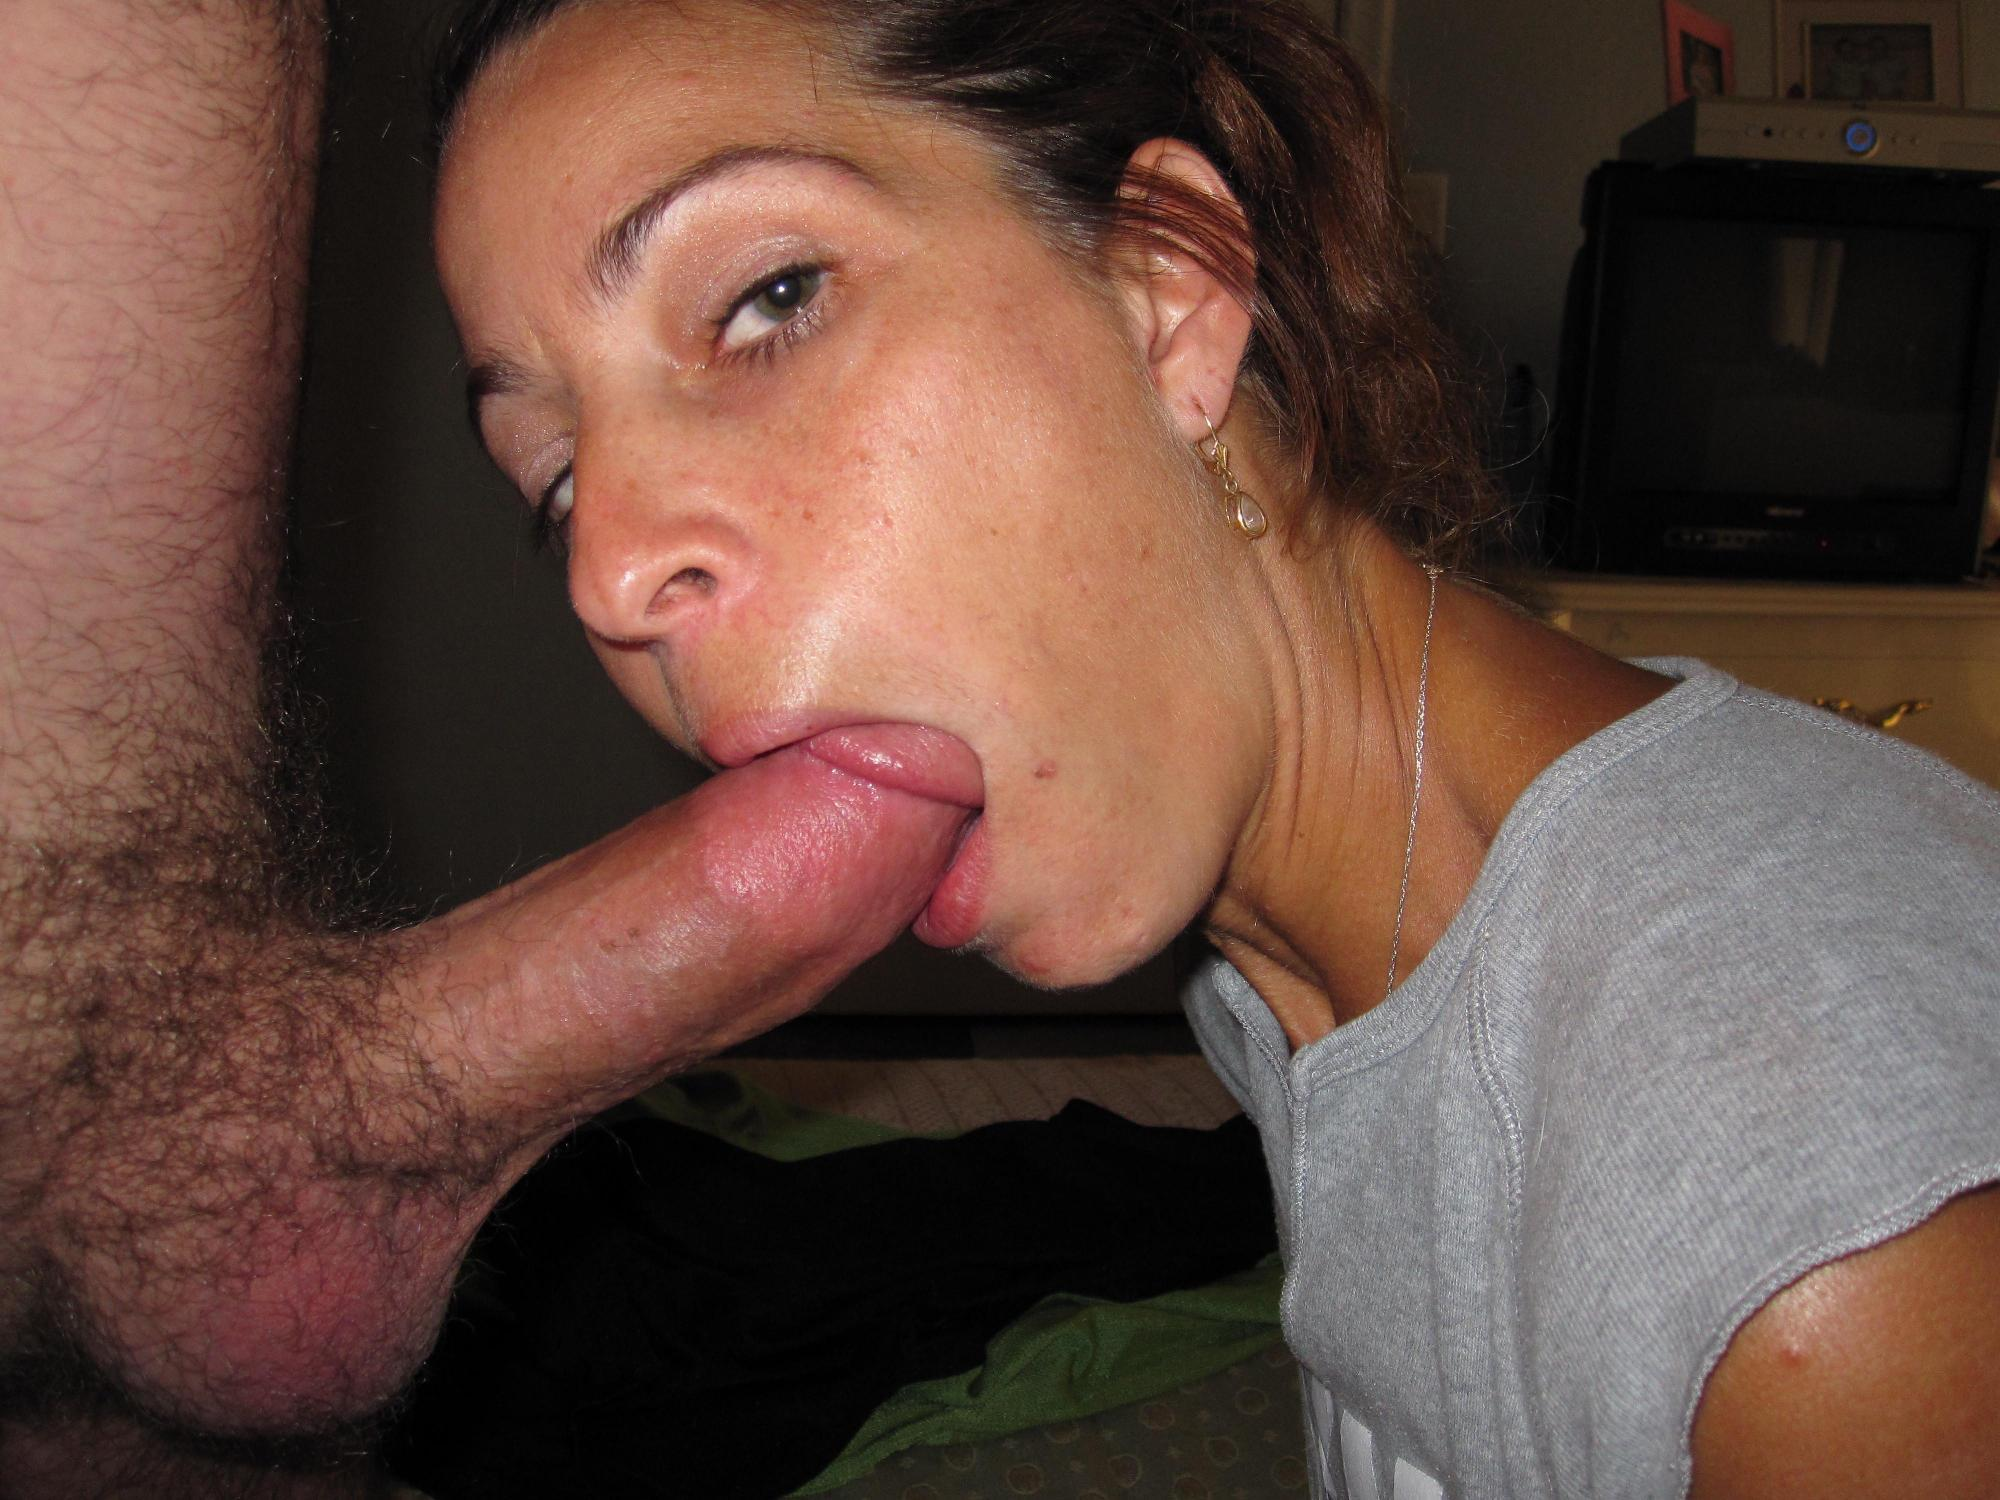 Everybody will like a dick blowjob by a horny MILF. Sucking cock in a private porn photo promises to be very nice